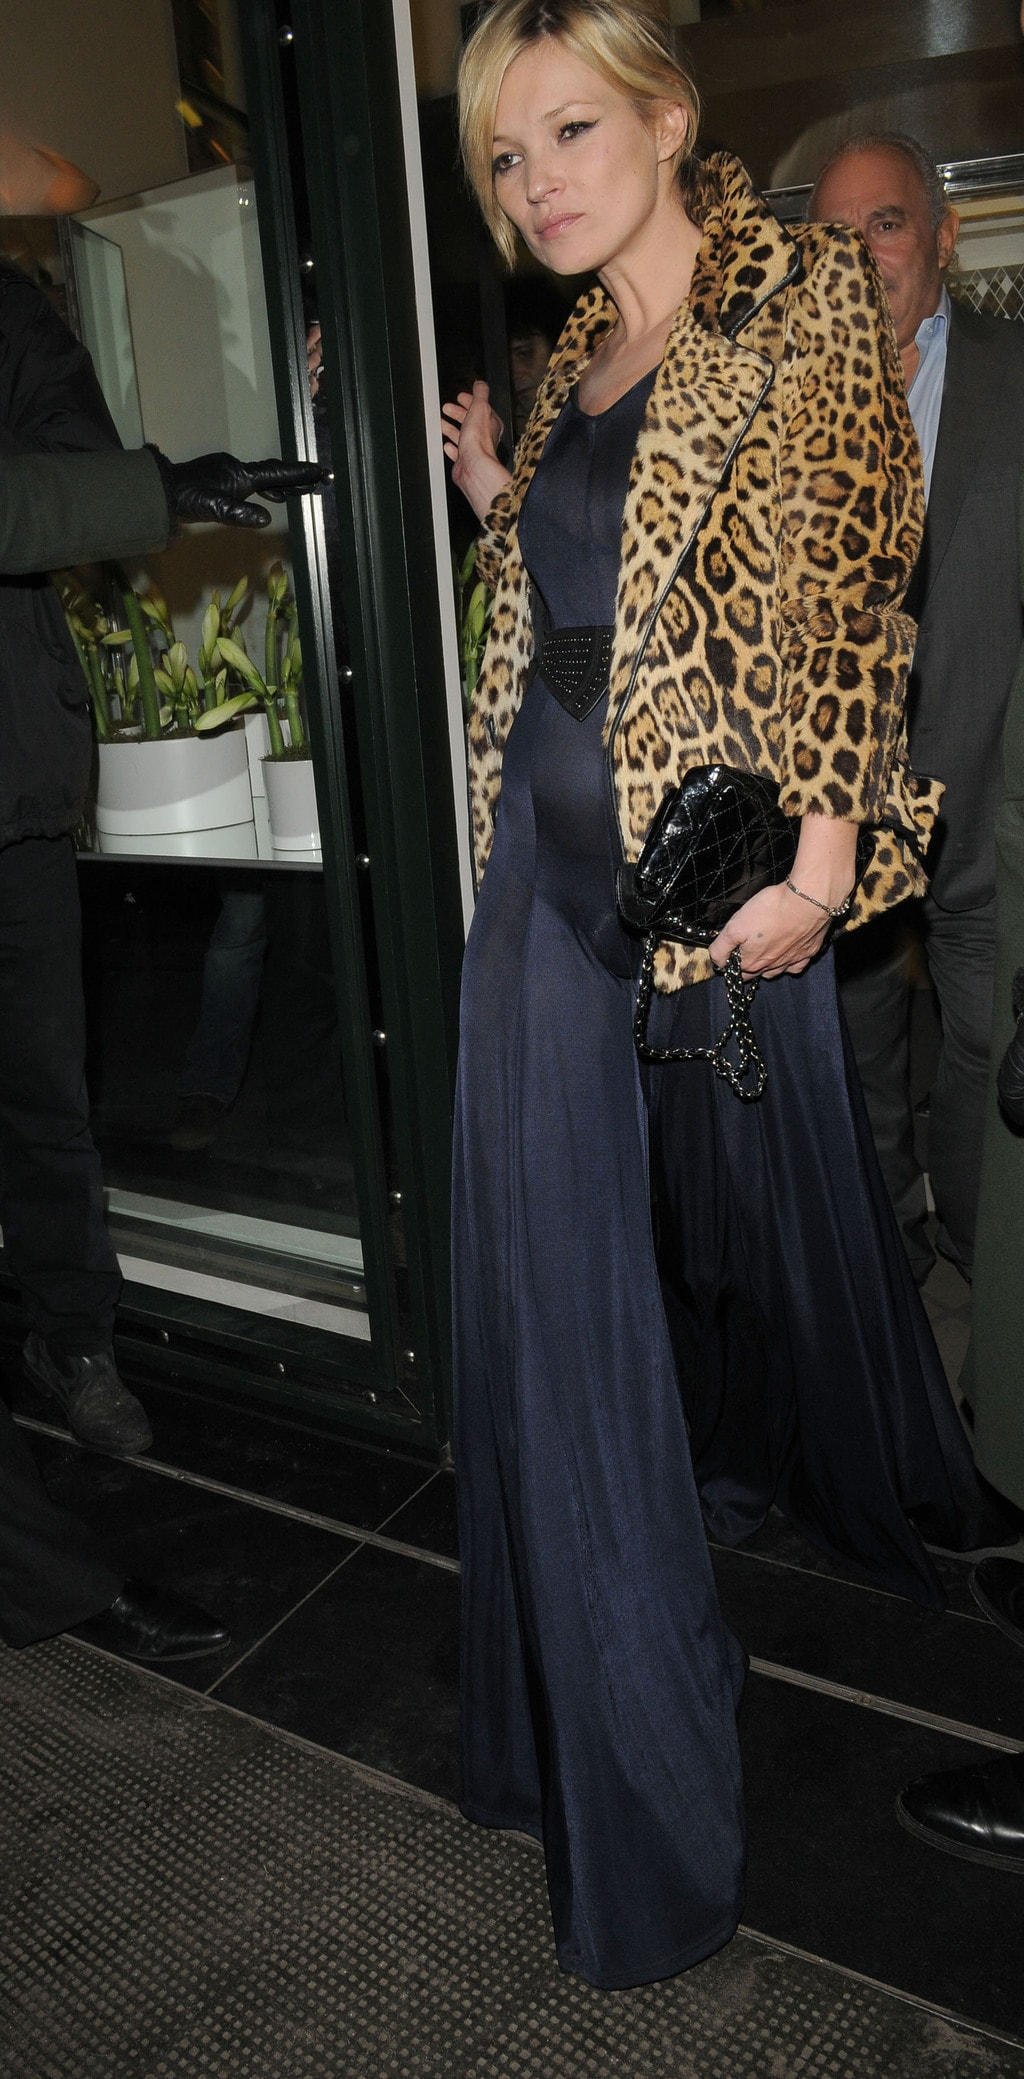 kate moss in a navy jumpsuit and leopard blazer carrying a clutch